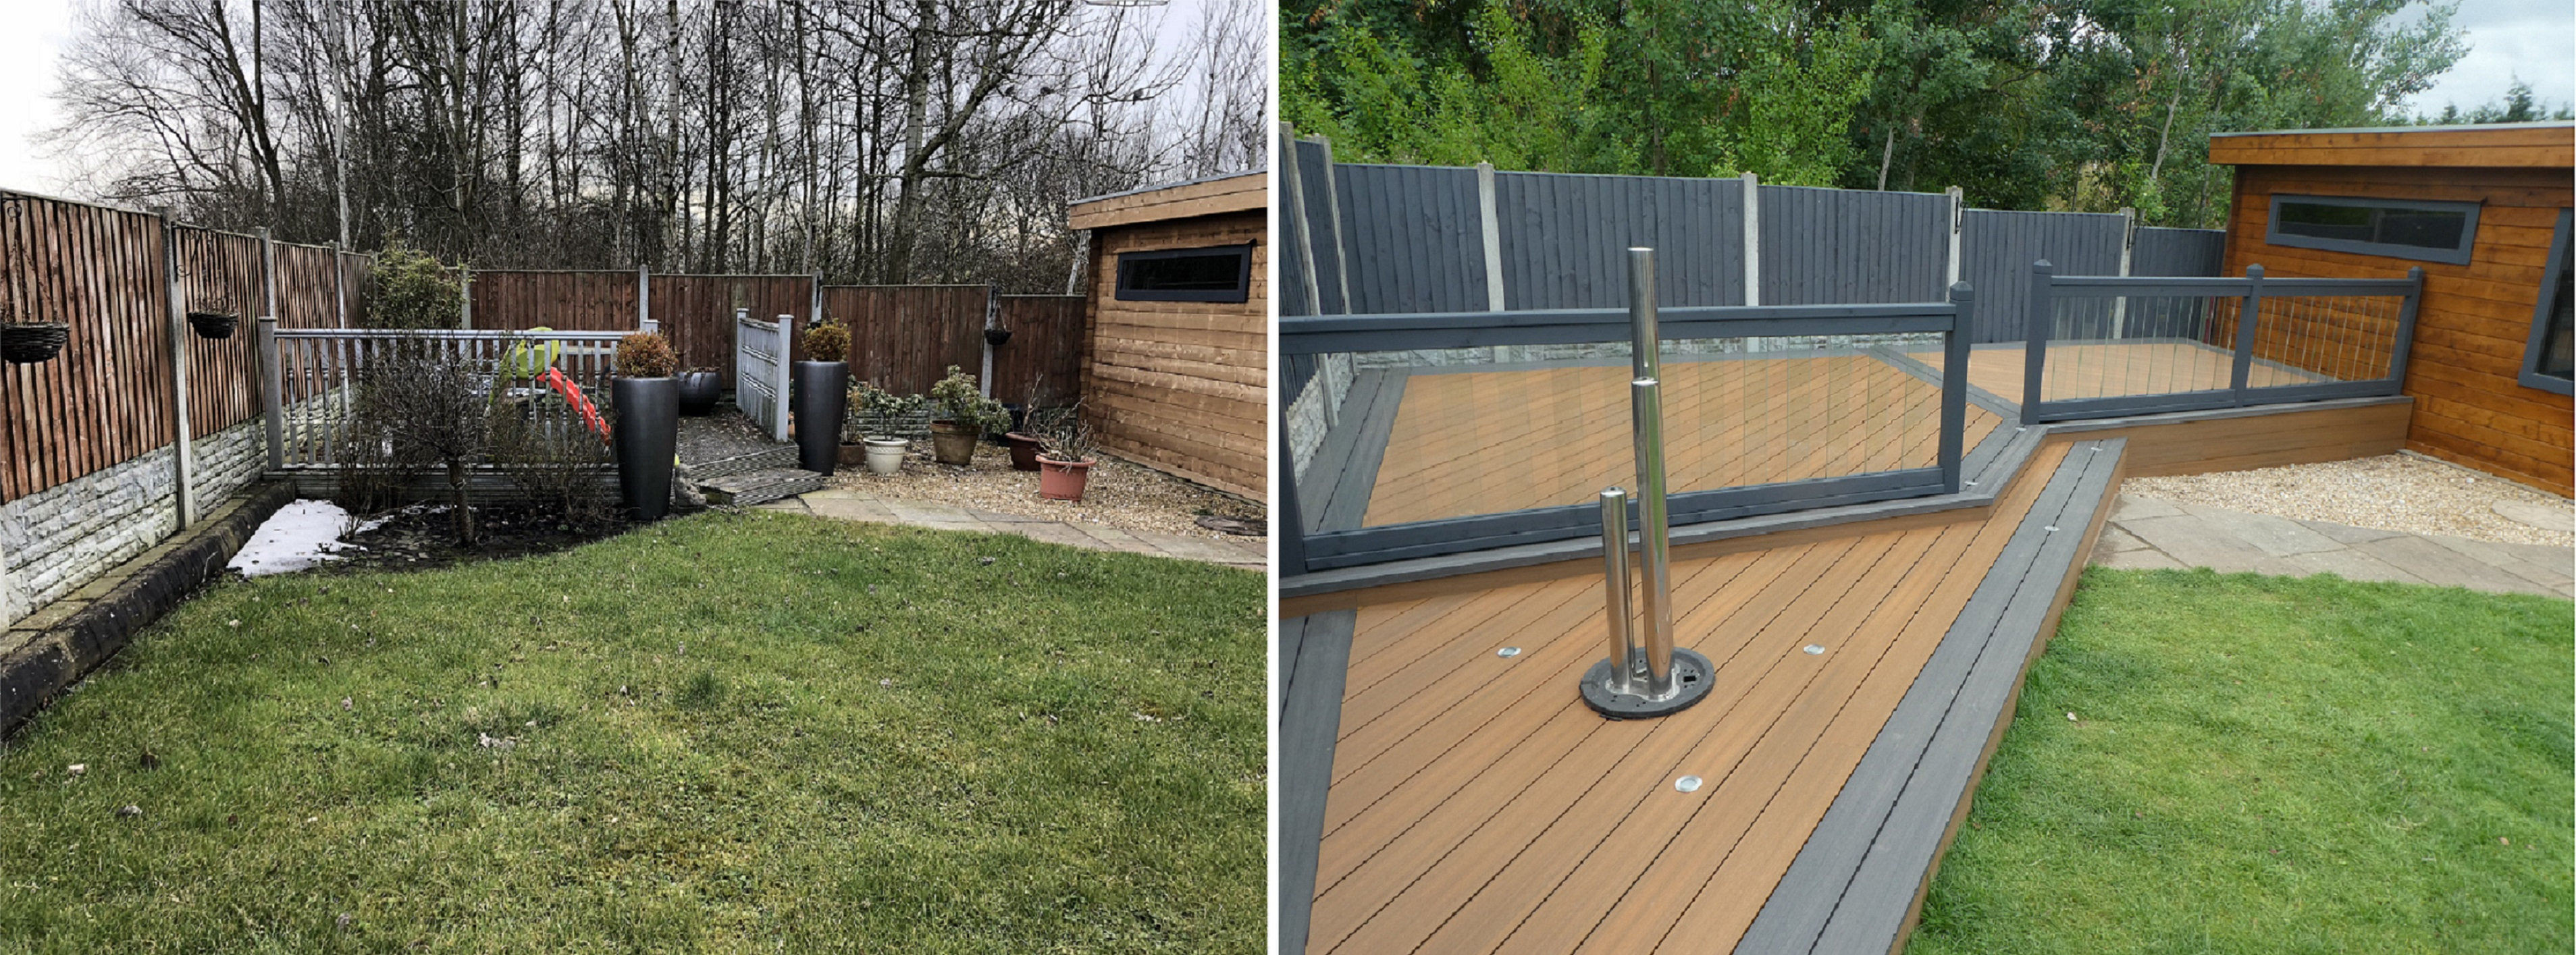 Before and After Installing Composite Decking